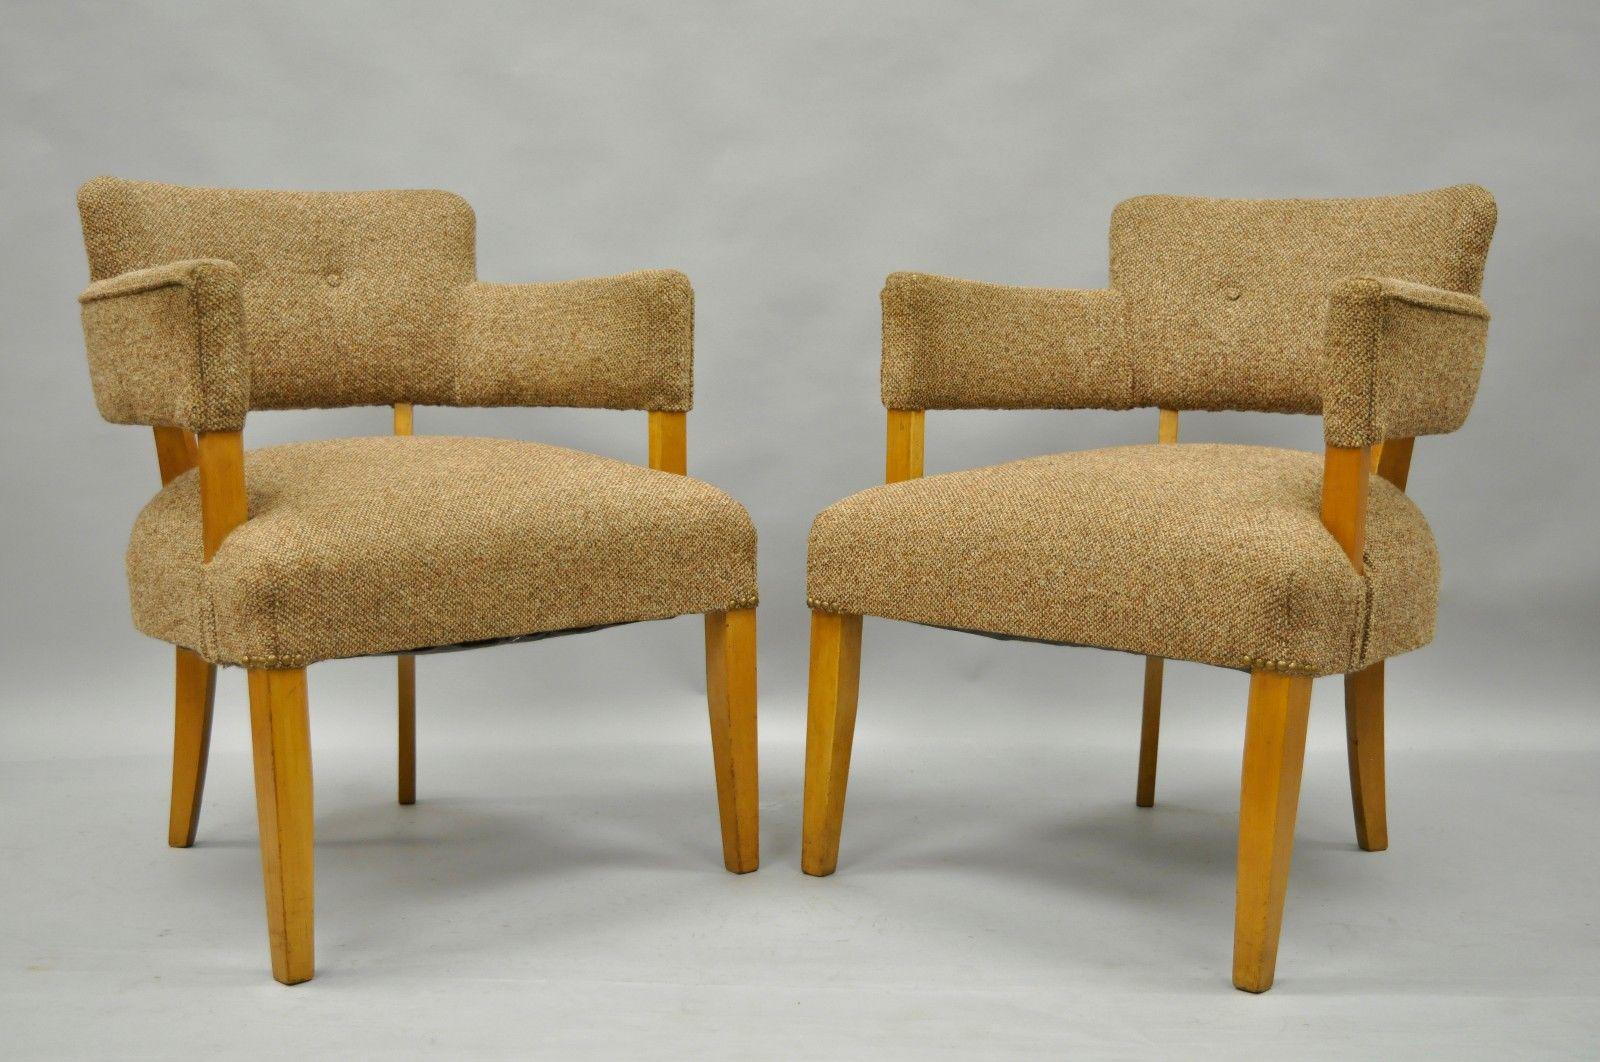 Jens Risom for Heywood Wakefield Mid-Century Modern Maple Club Lounge Chairs - a Pair  sc 1 st  Chairish & Jens Risom for Heywood Wakefield Mid-Century Modern Maple Club ...